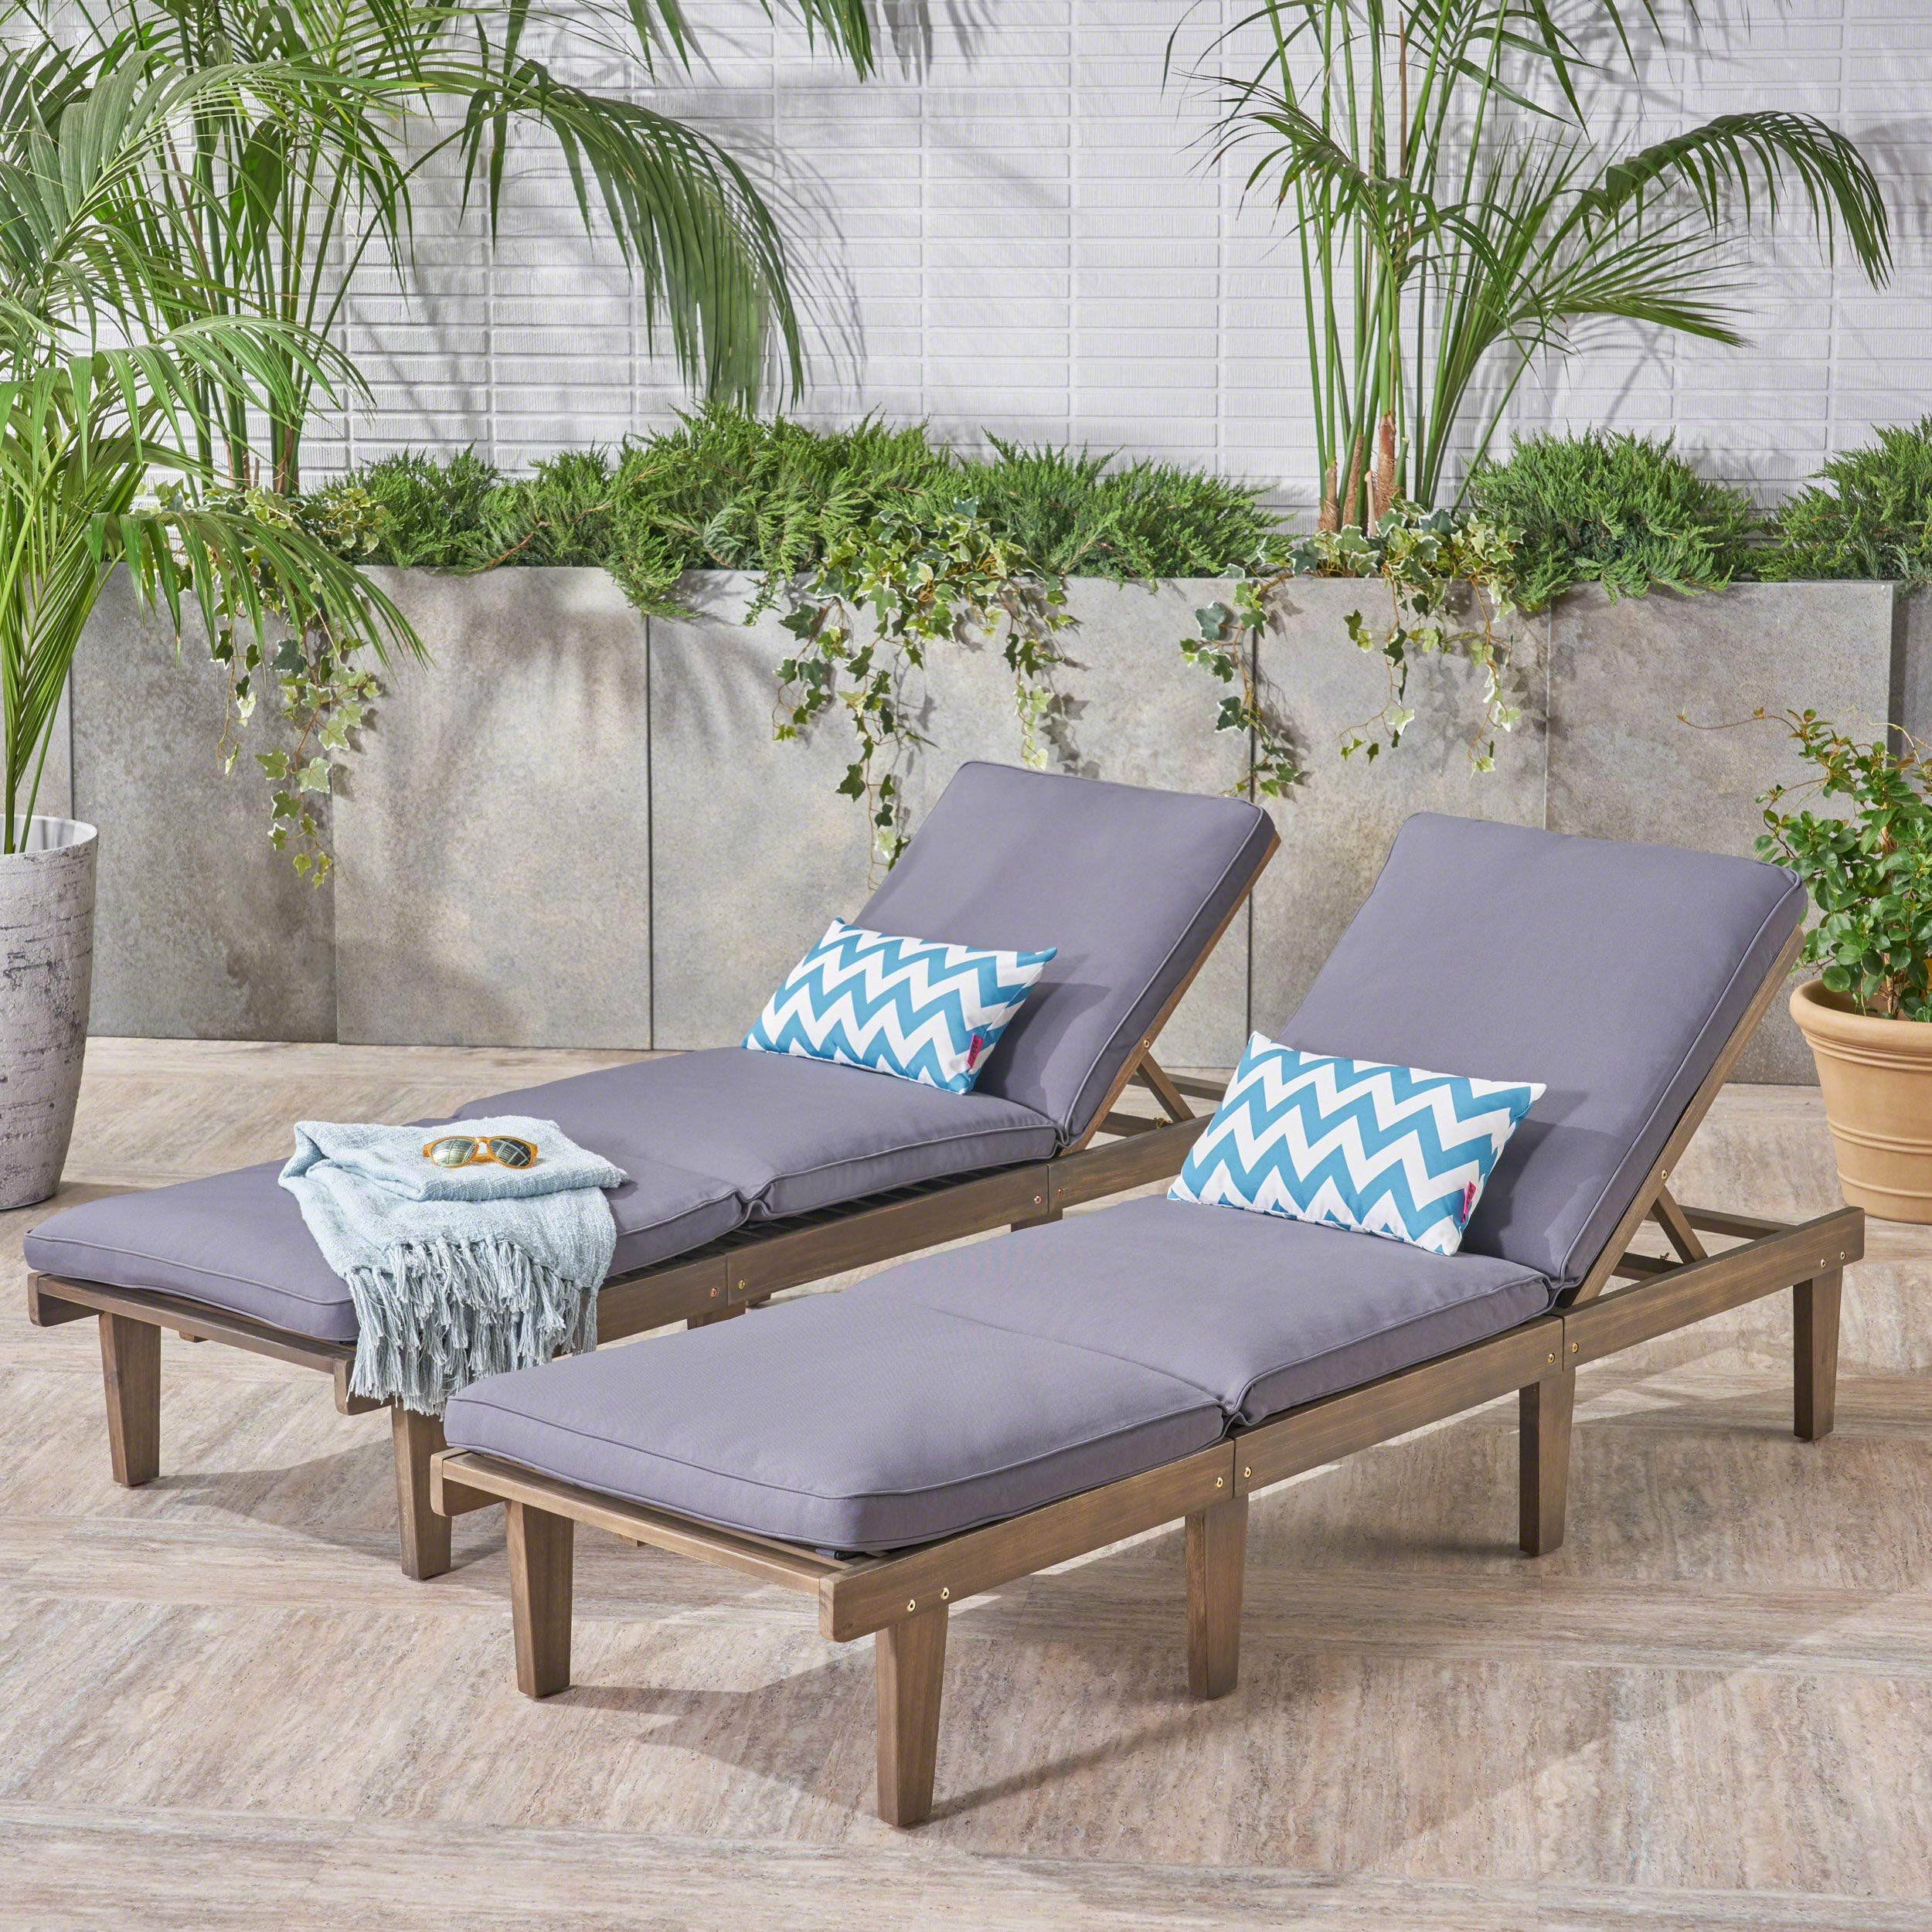 Alisa Outdoor Acacia Wood Chaise Lounge with Cushions (Set of 2), Grey and Dark Grey